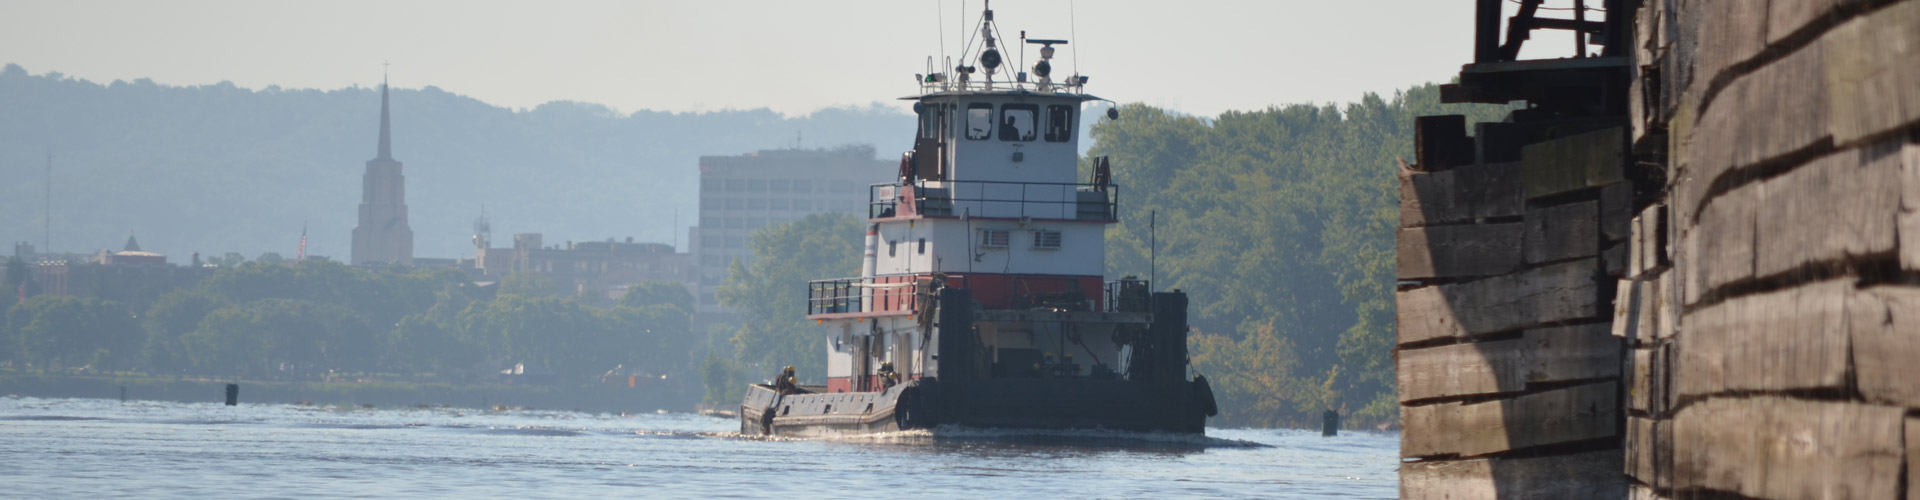 barge transportation, harbor management, dispatch center, mississppi river, towboat assists, La Crosse wi